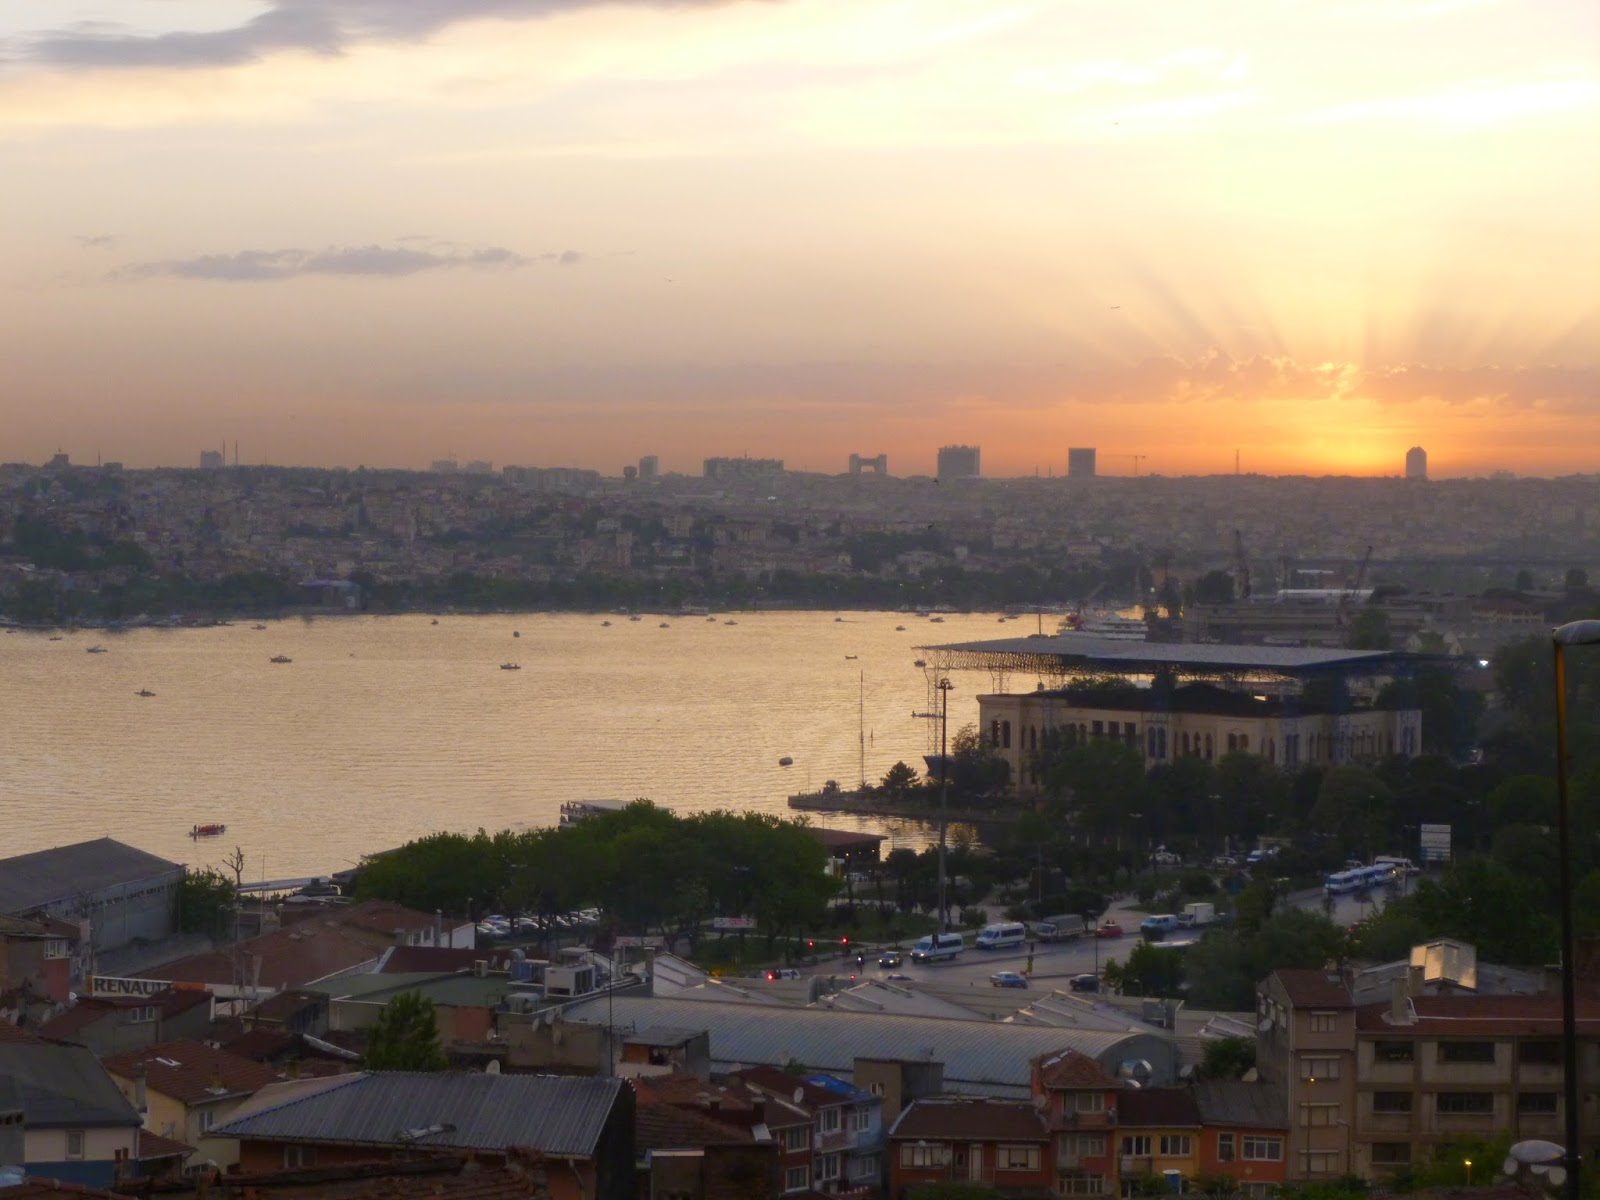 Picture of the Golden Horn, a bay in Istanbul, from a hill above, surrounded by the city and lit red and orange by the sunset.